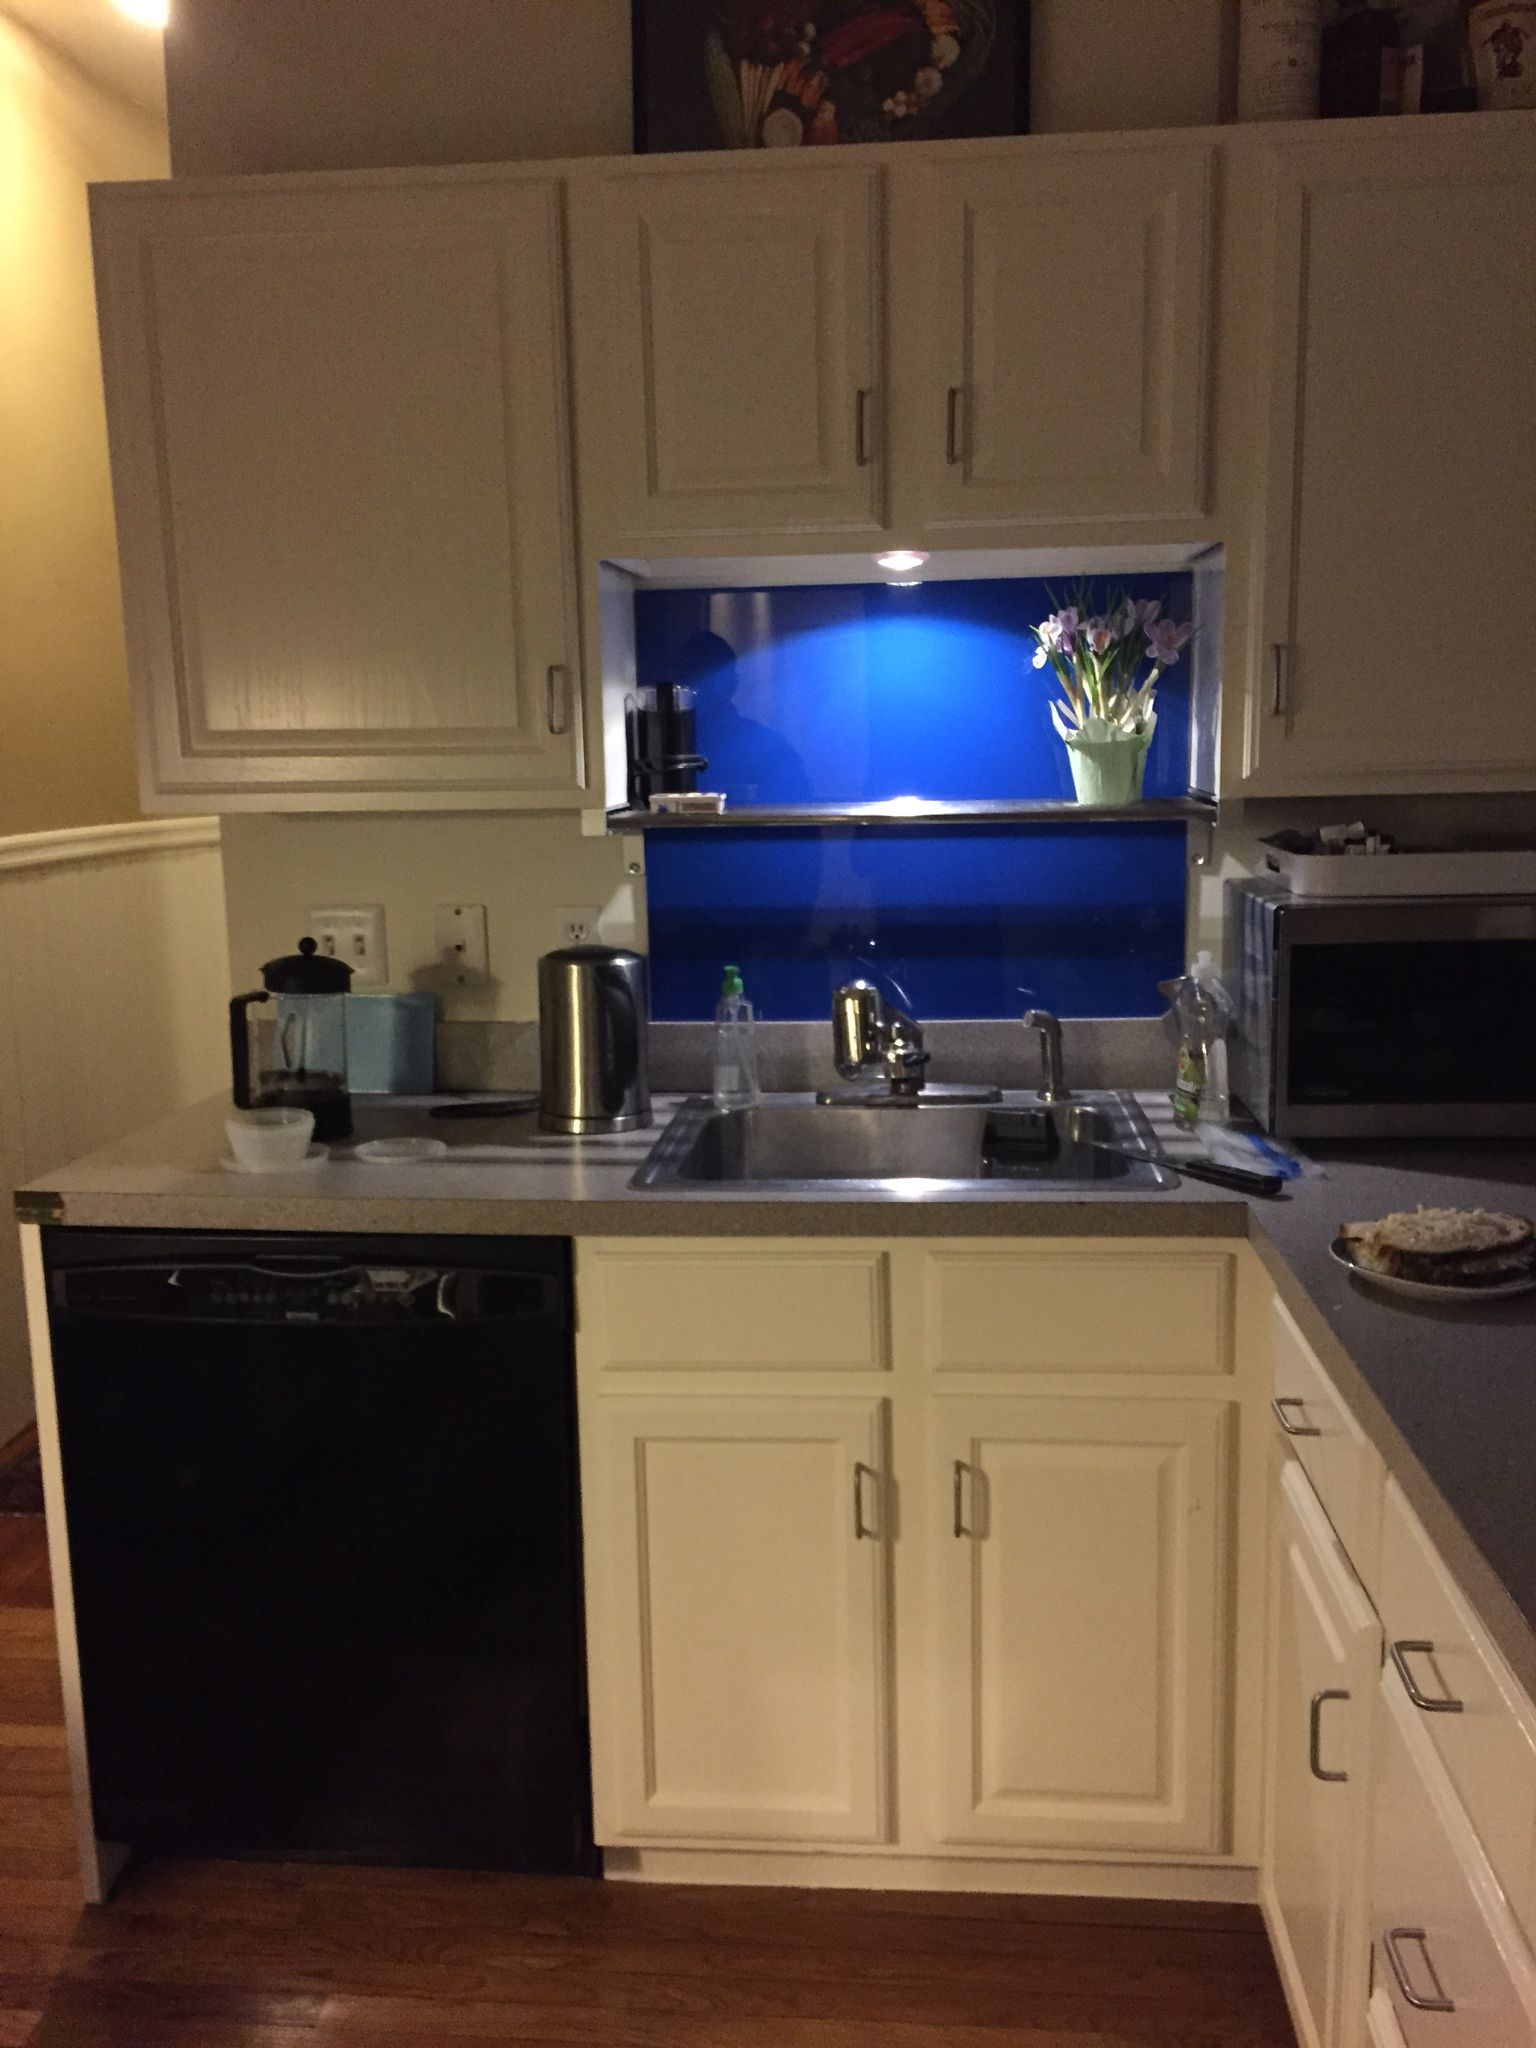 led freestanding countertops and case white designs closet in cabinet walk display glass with idea sparkling tempered